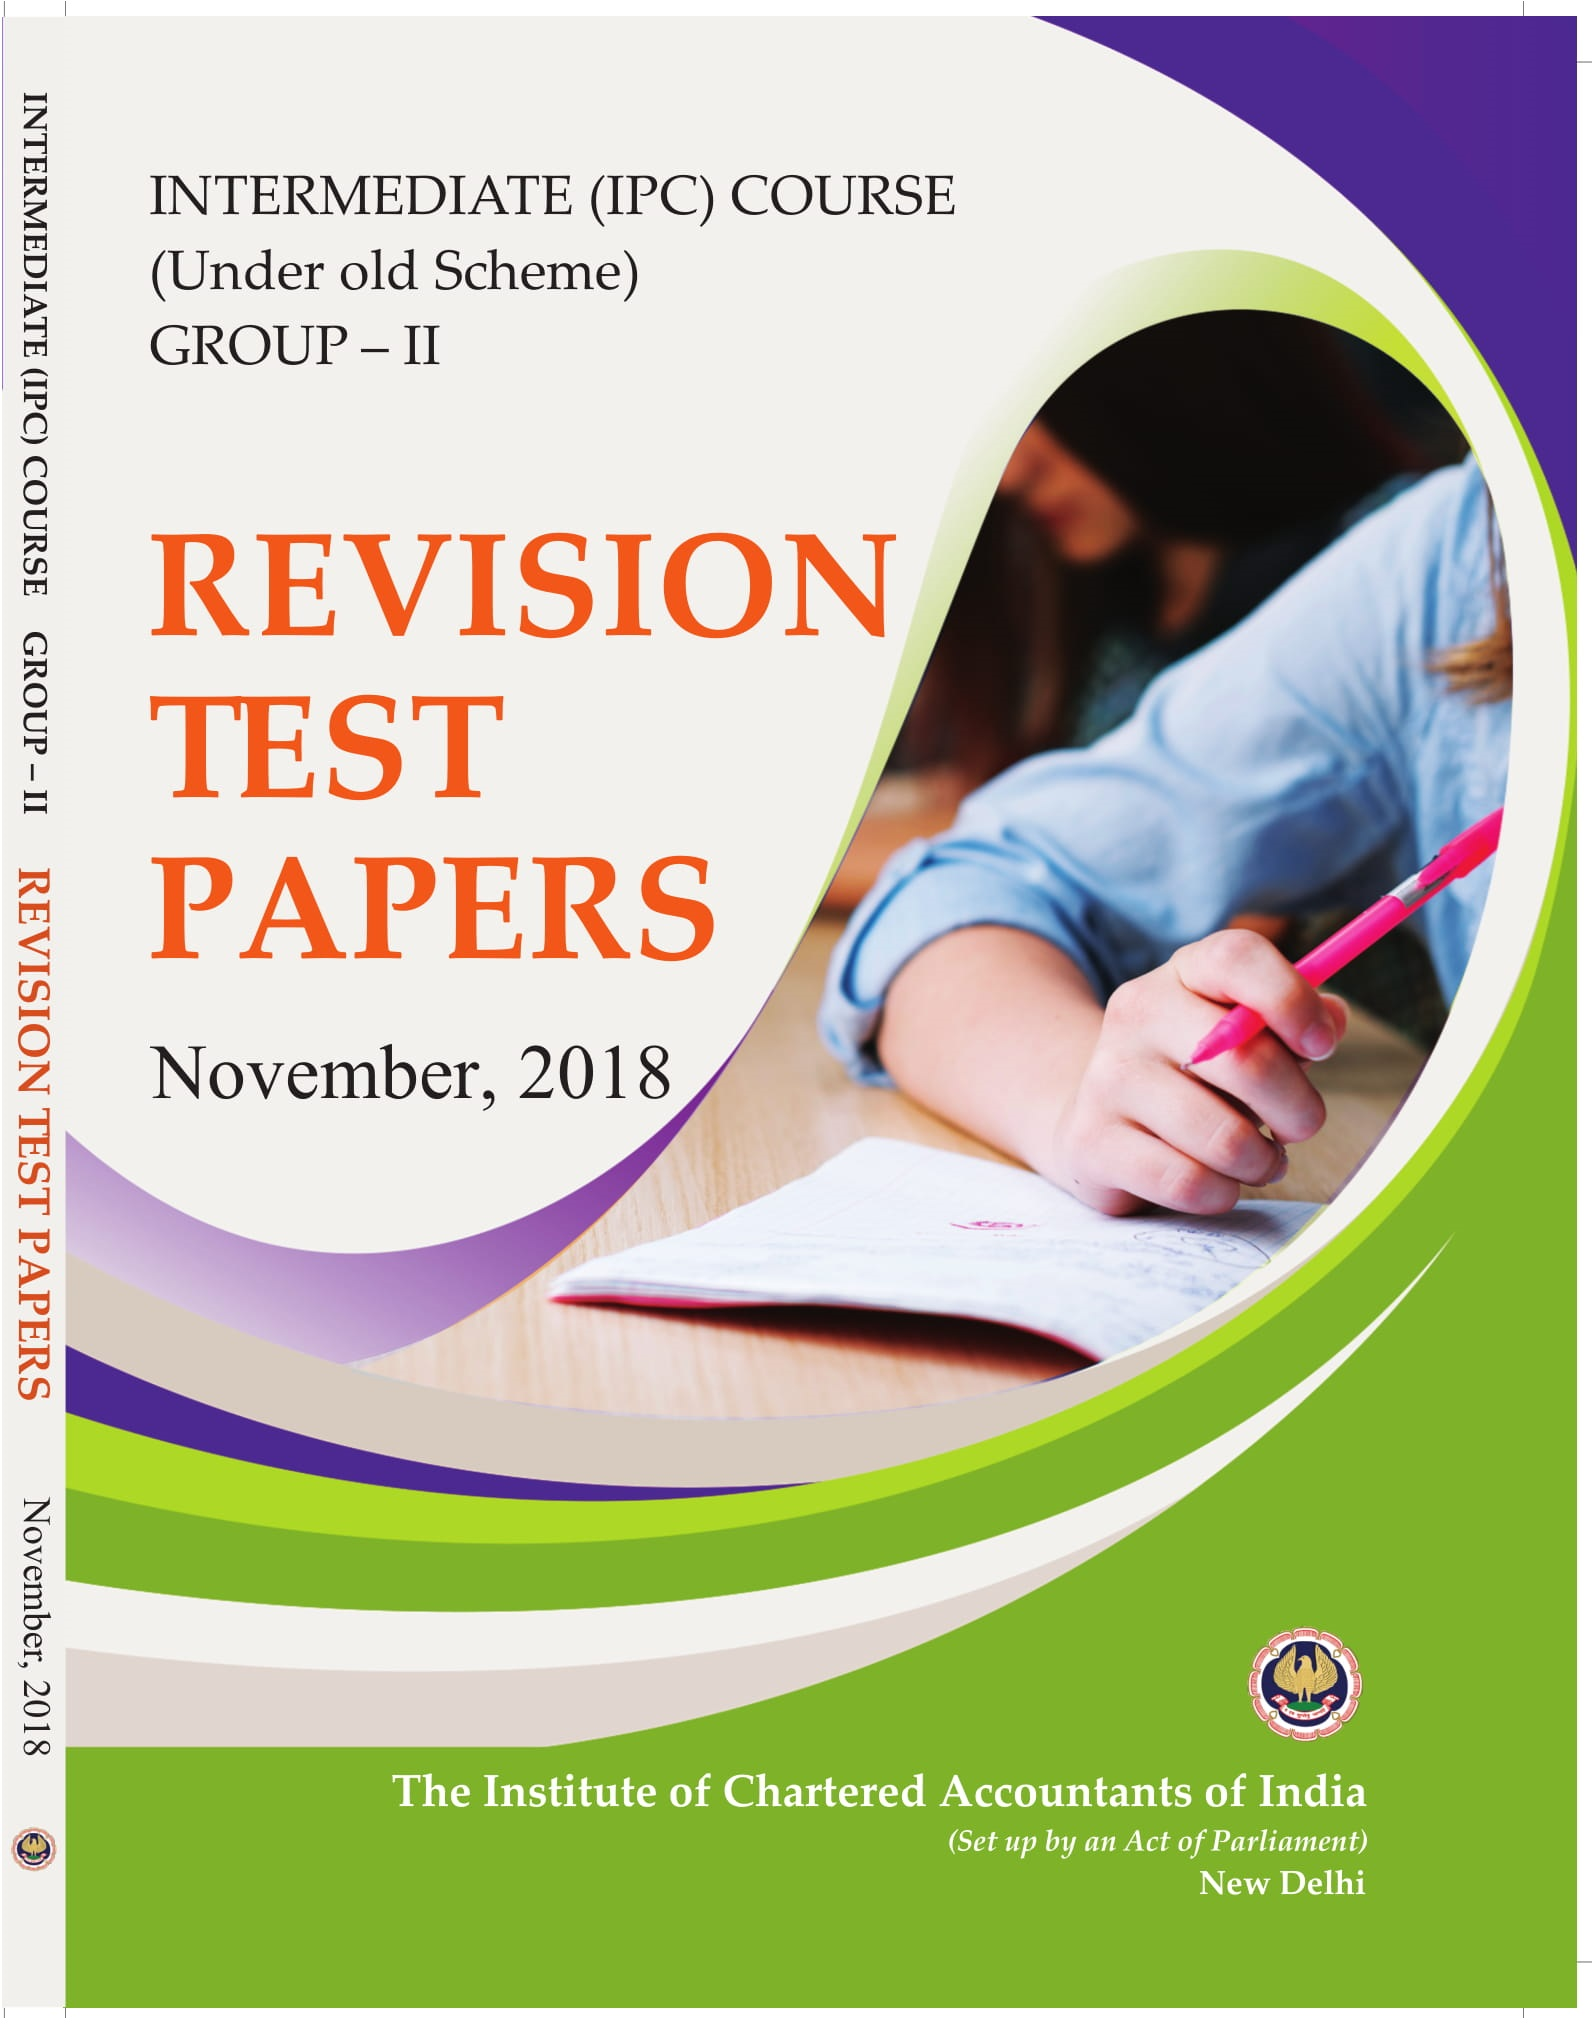 Intermediate (IPC) Course (Under Old Scheme) - Group - II - Revision Test Papers - November, 2018